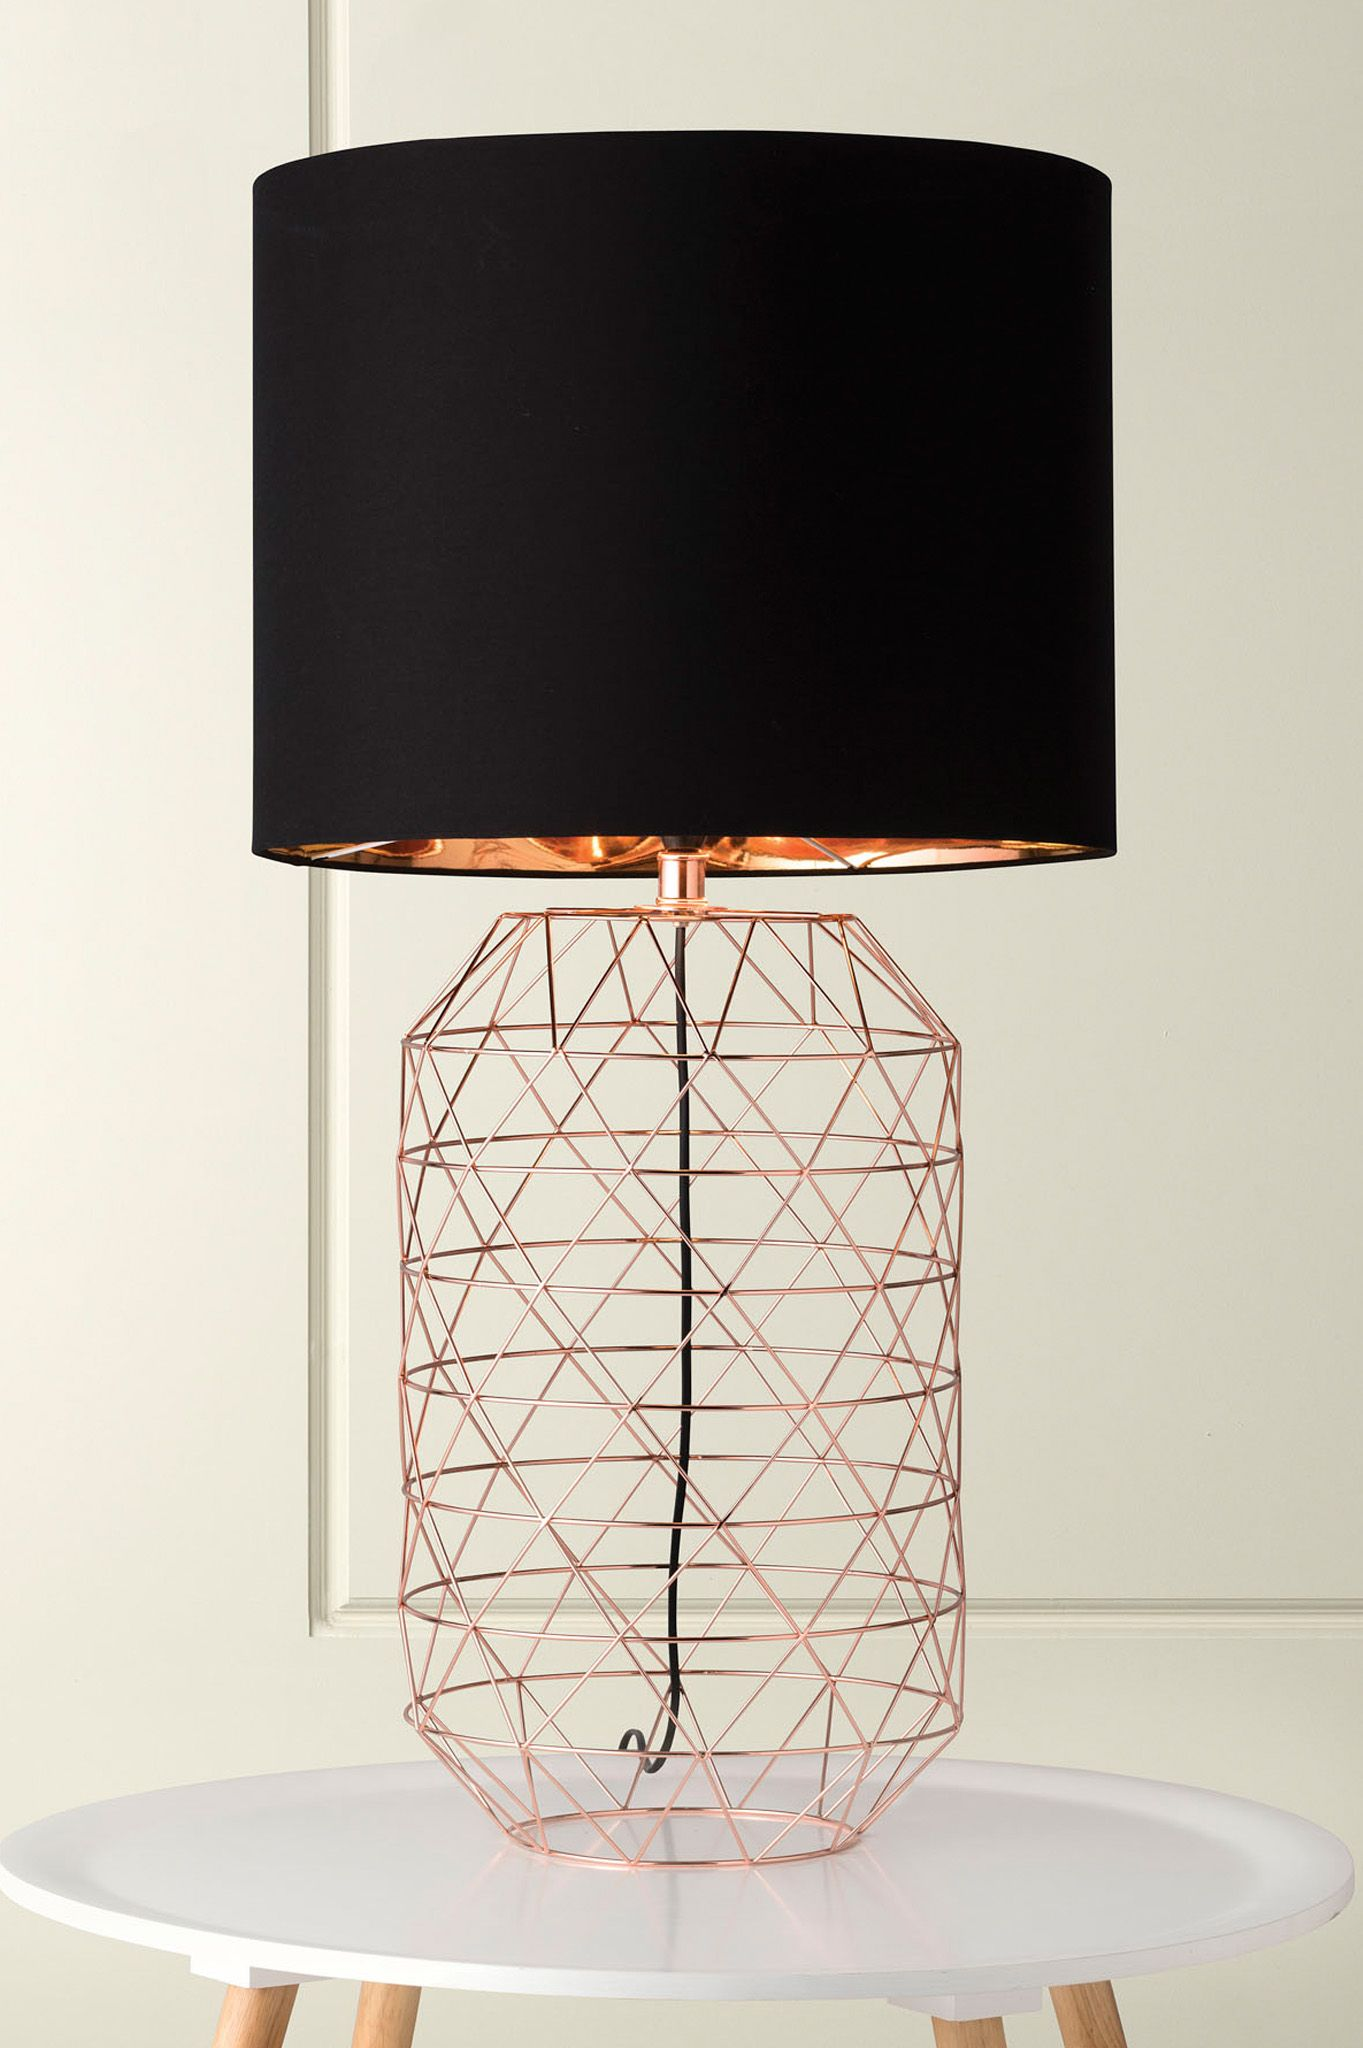 1131 evie rose copper wire geometric table lamp with black shade and 1131 evie rose copper wire geometric table lamp with black shade and copper foil lining keyboard keysfo Images